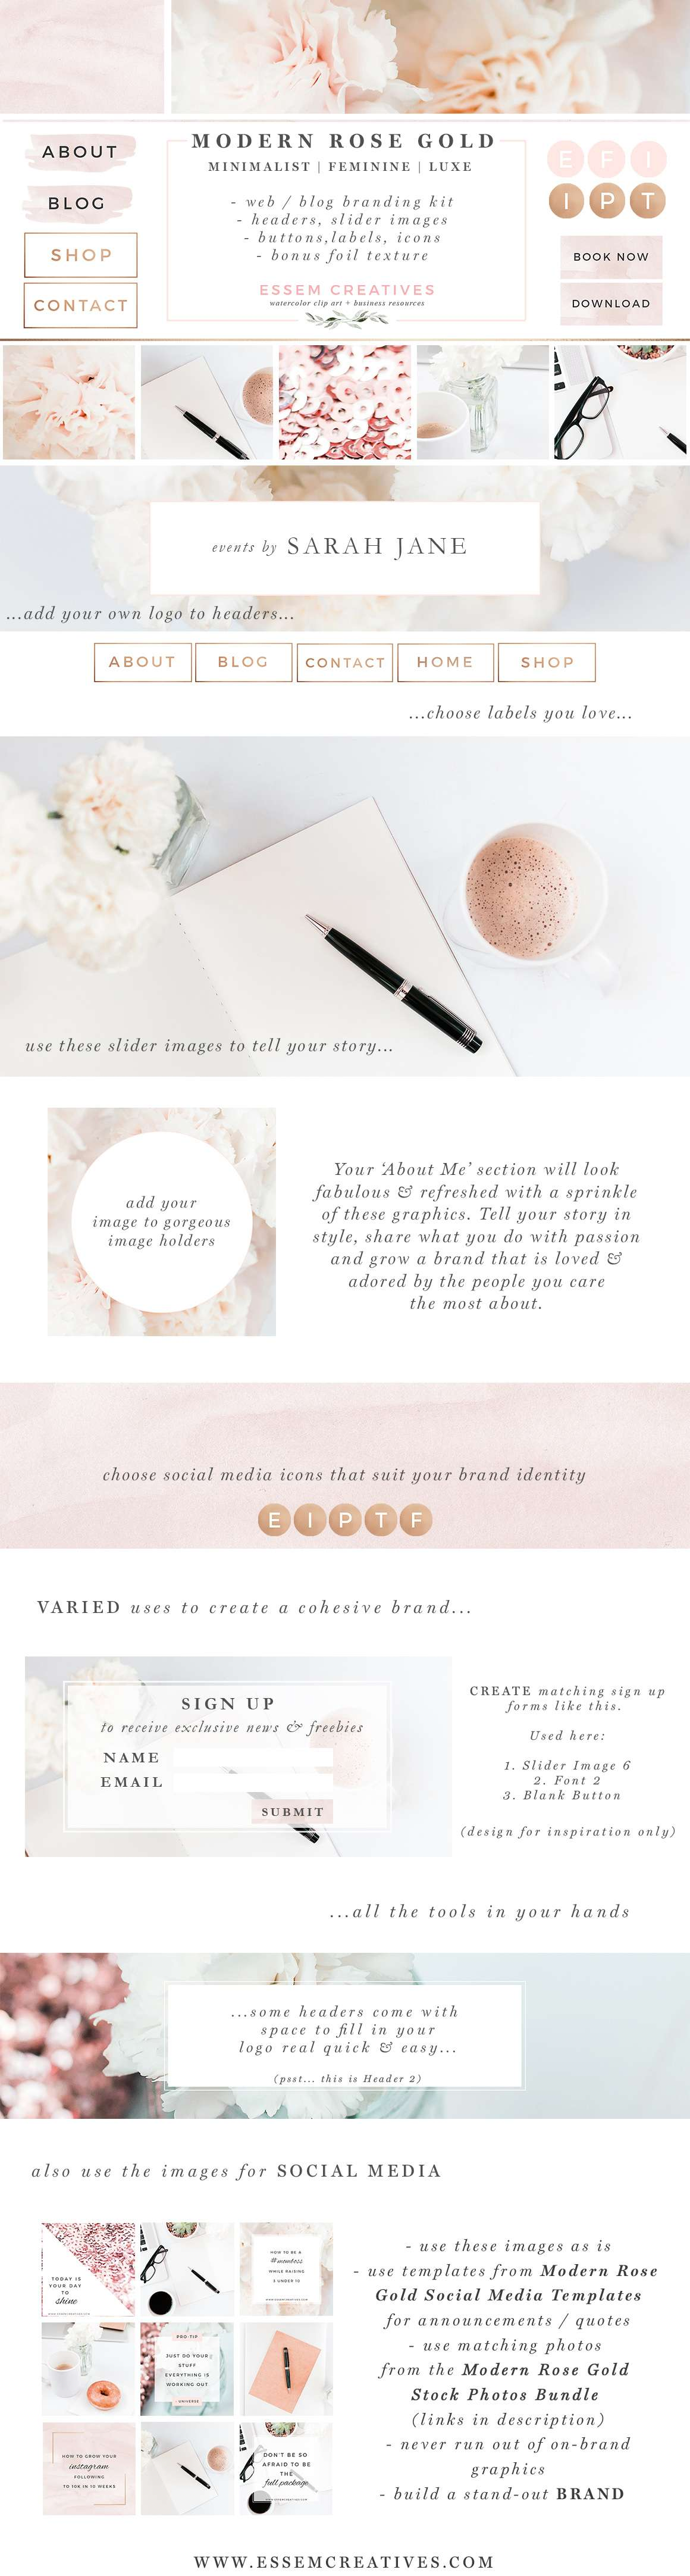 Modern Rose Gold Web Blog Branding Kit | Modern Minimalist Blog Design & Branding | Neutral WordPress Theme Elements | Feminine Peach Pink White Graphics | Bright and Airy Website Headers | Social Media Icons, Buttons, Banners, Labels & More | Click through to check out this gorgeous kit >>